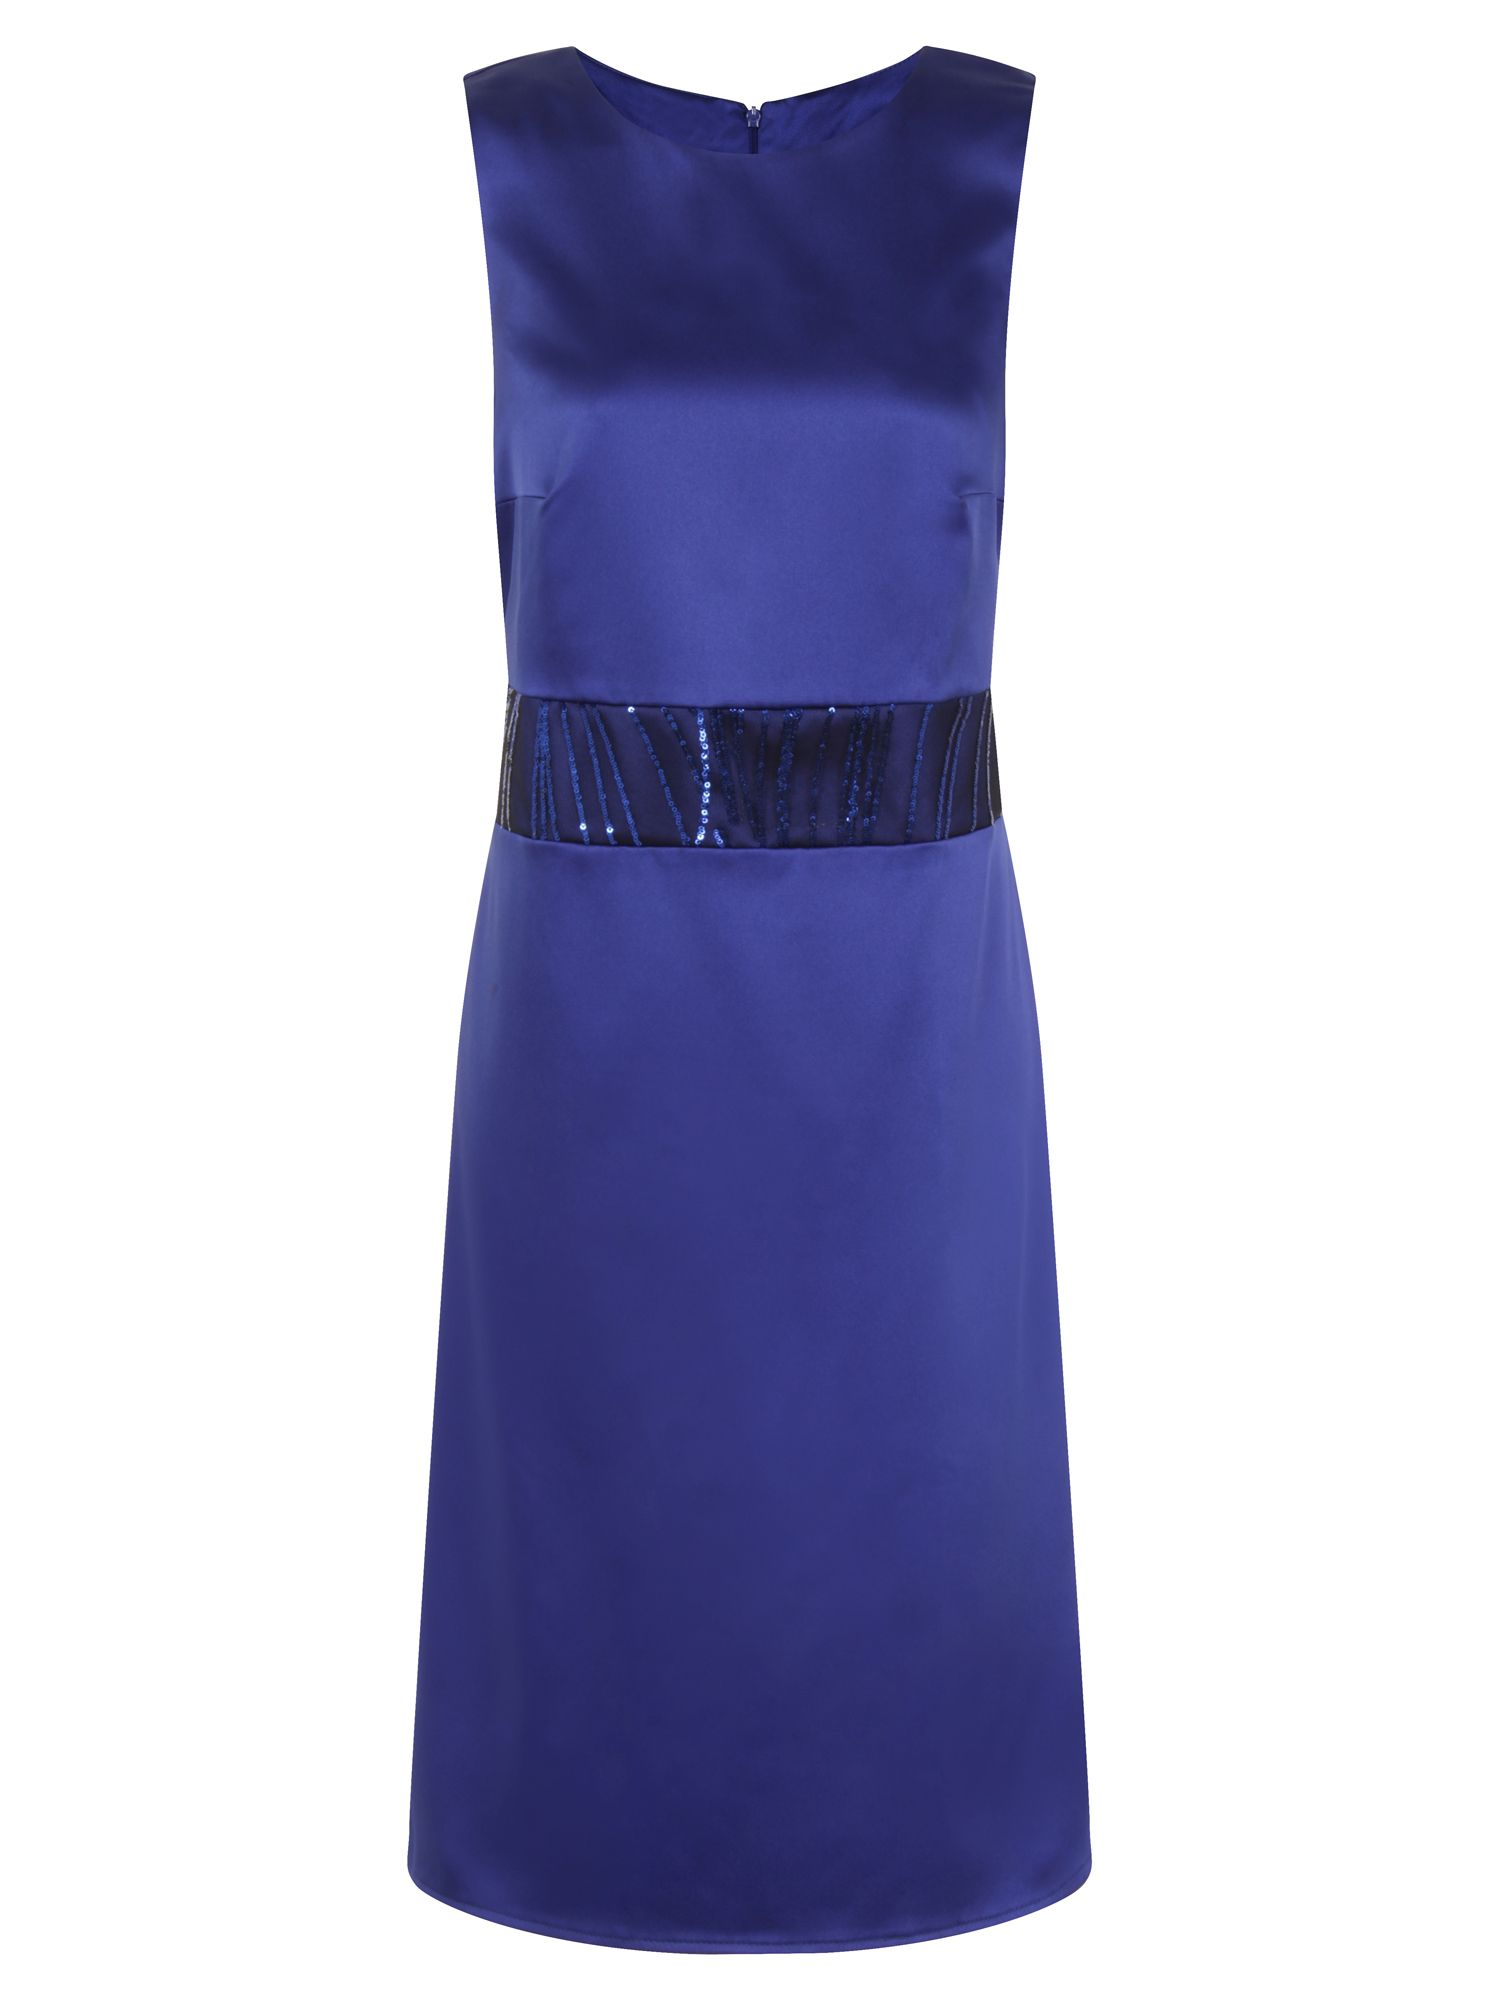 HotSquash Sequin Wasitband Dress in Clever Fabric, Royal Blue